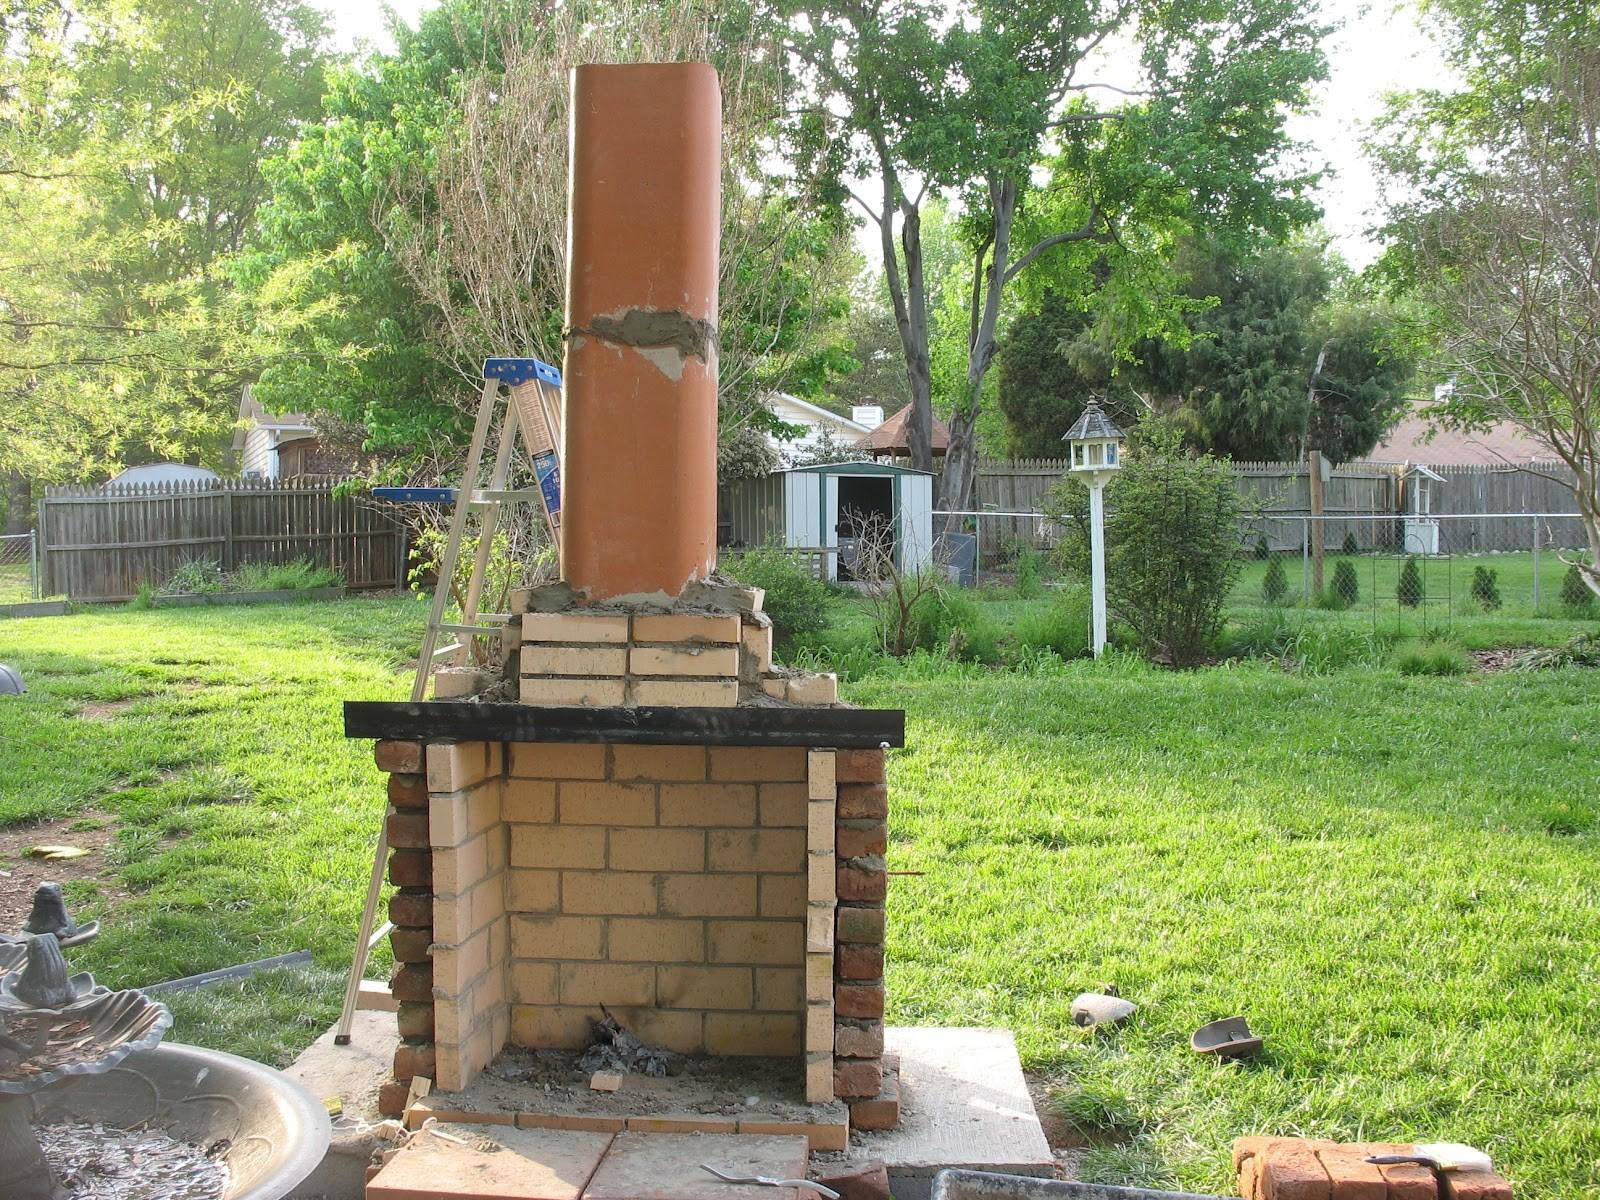 Home Decor Jamesdhogan Outdoor Fireplace Project